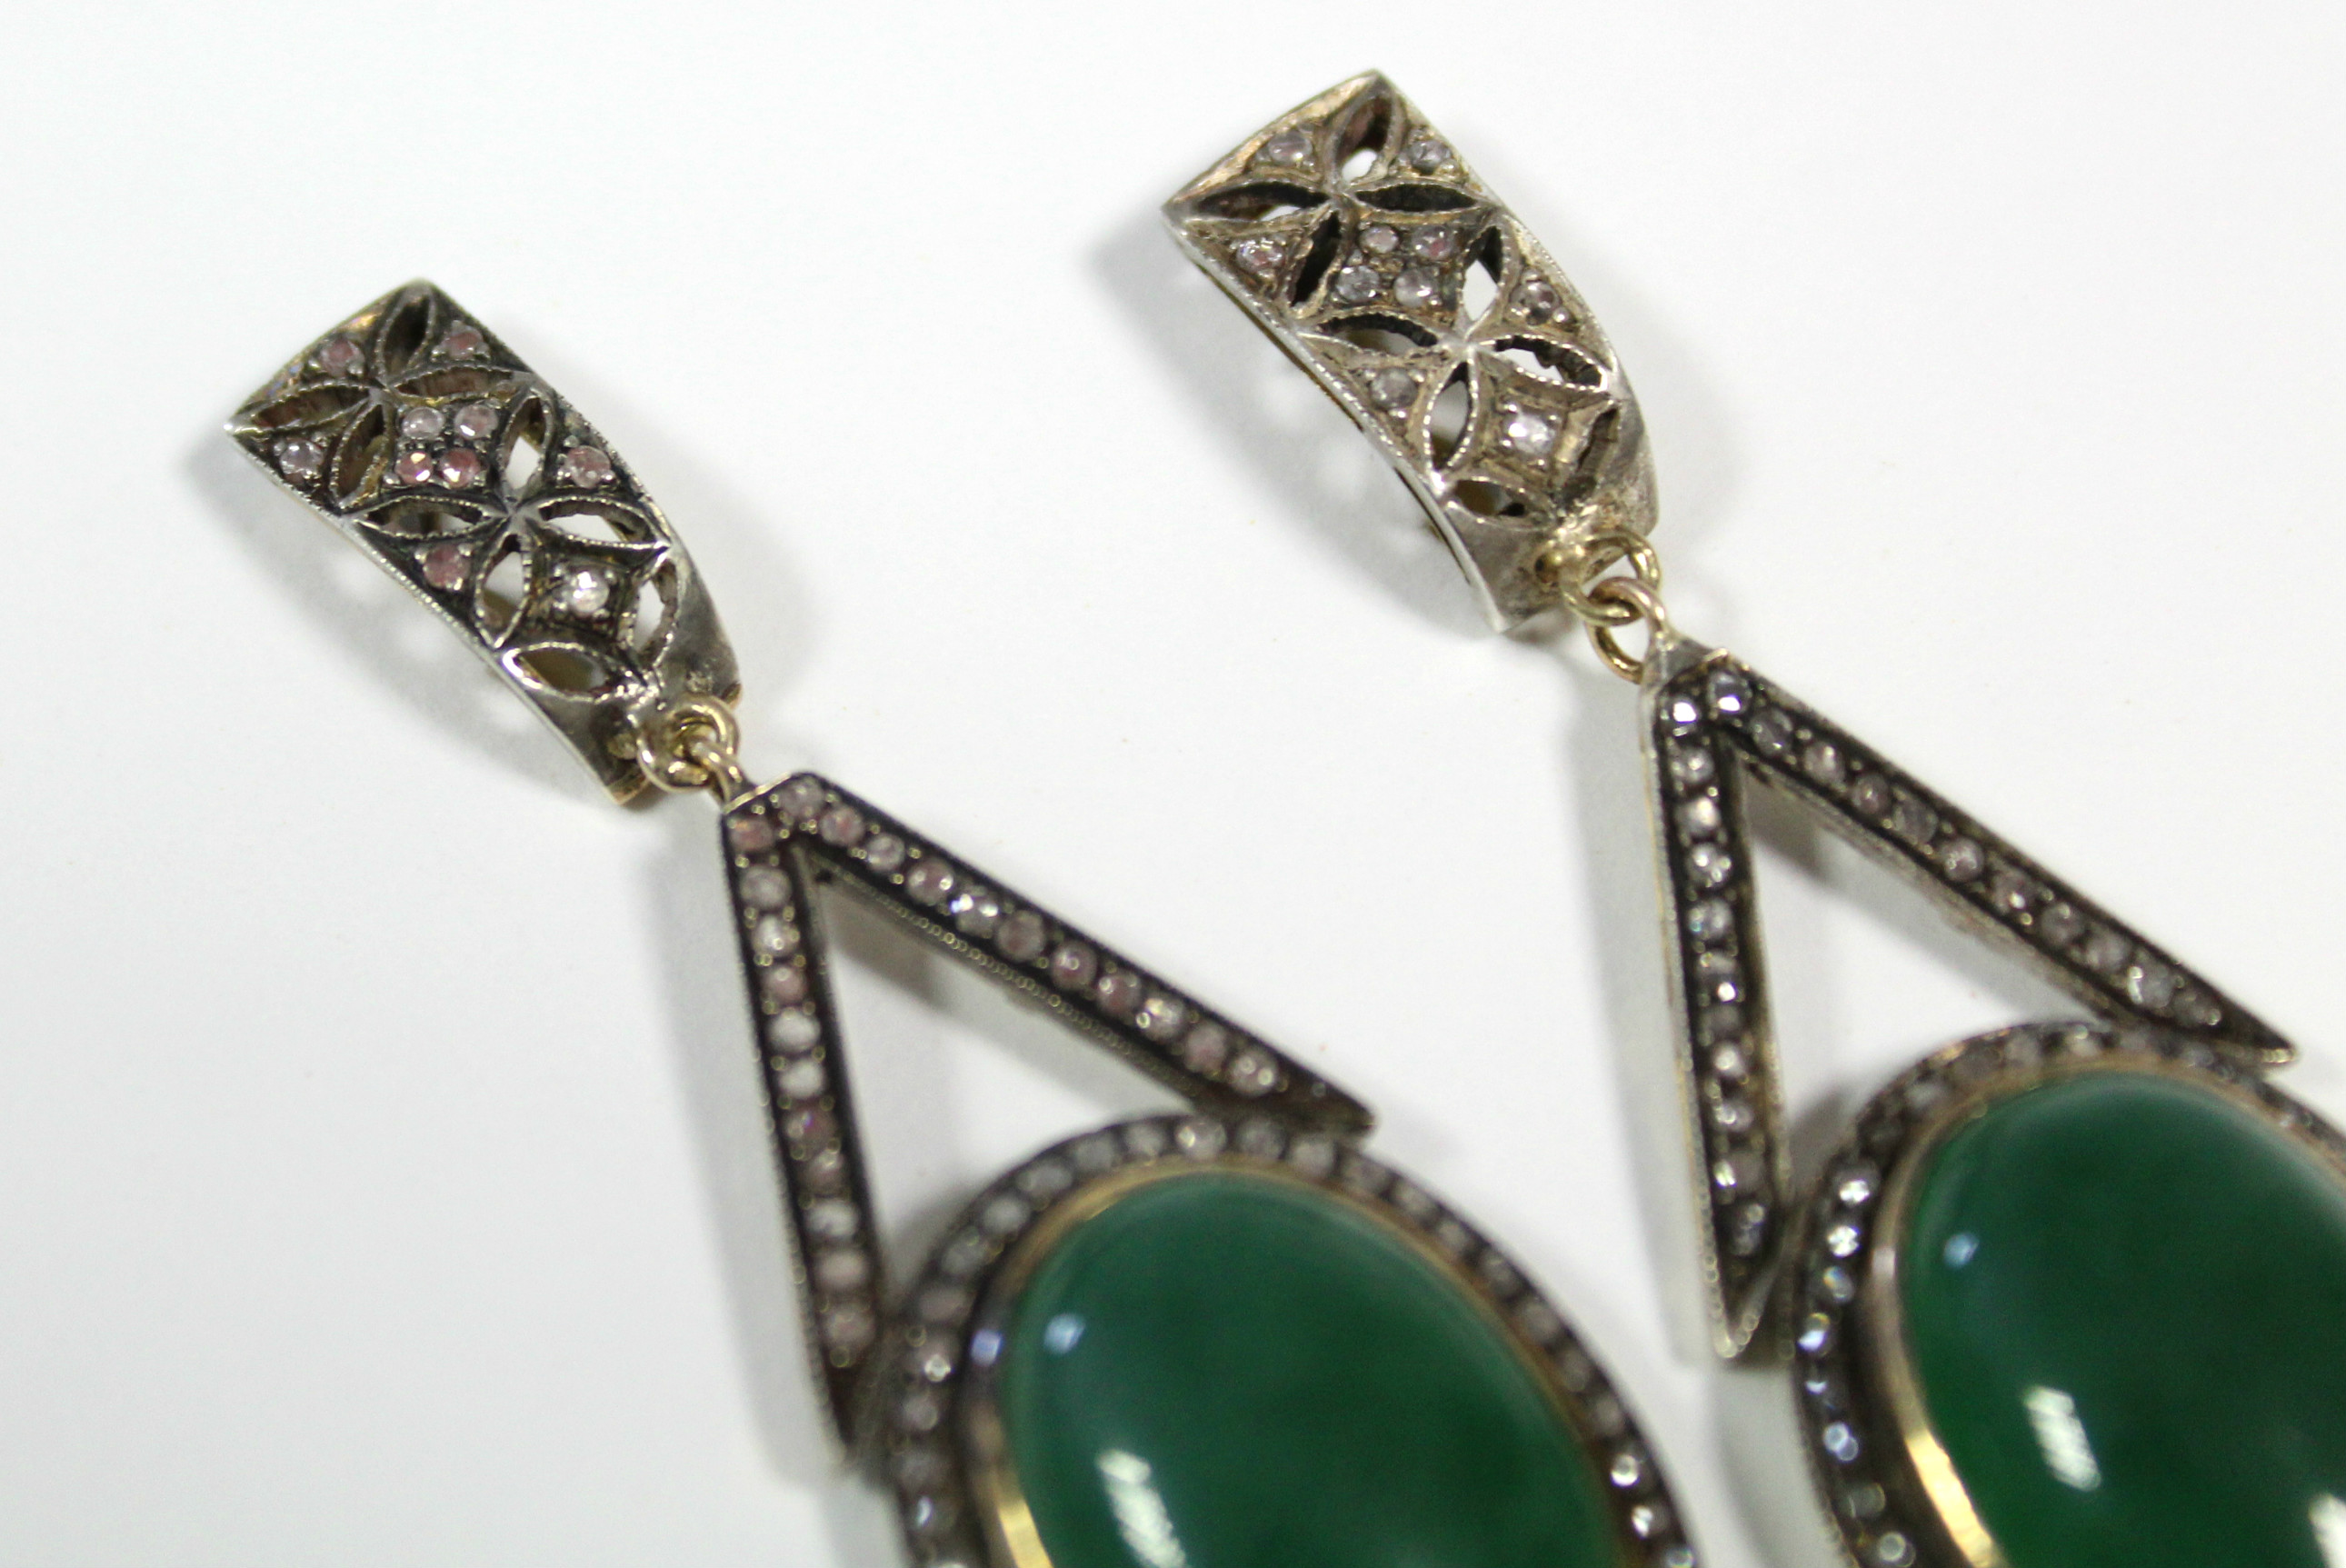 A PAIR OF JADE & DIAMOND PENDANT EARRINGS, each with oval green jade cabochon suspended from an - Image 5 of 6